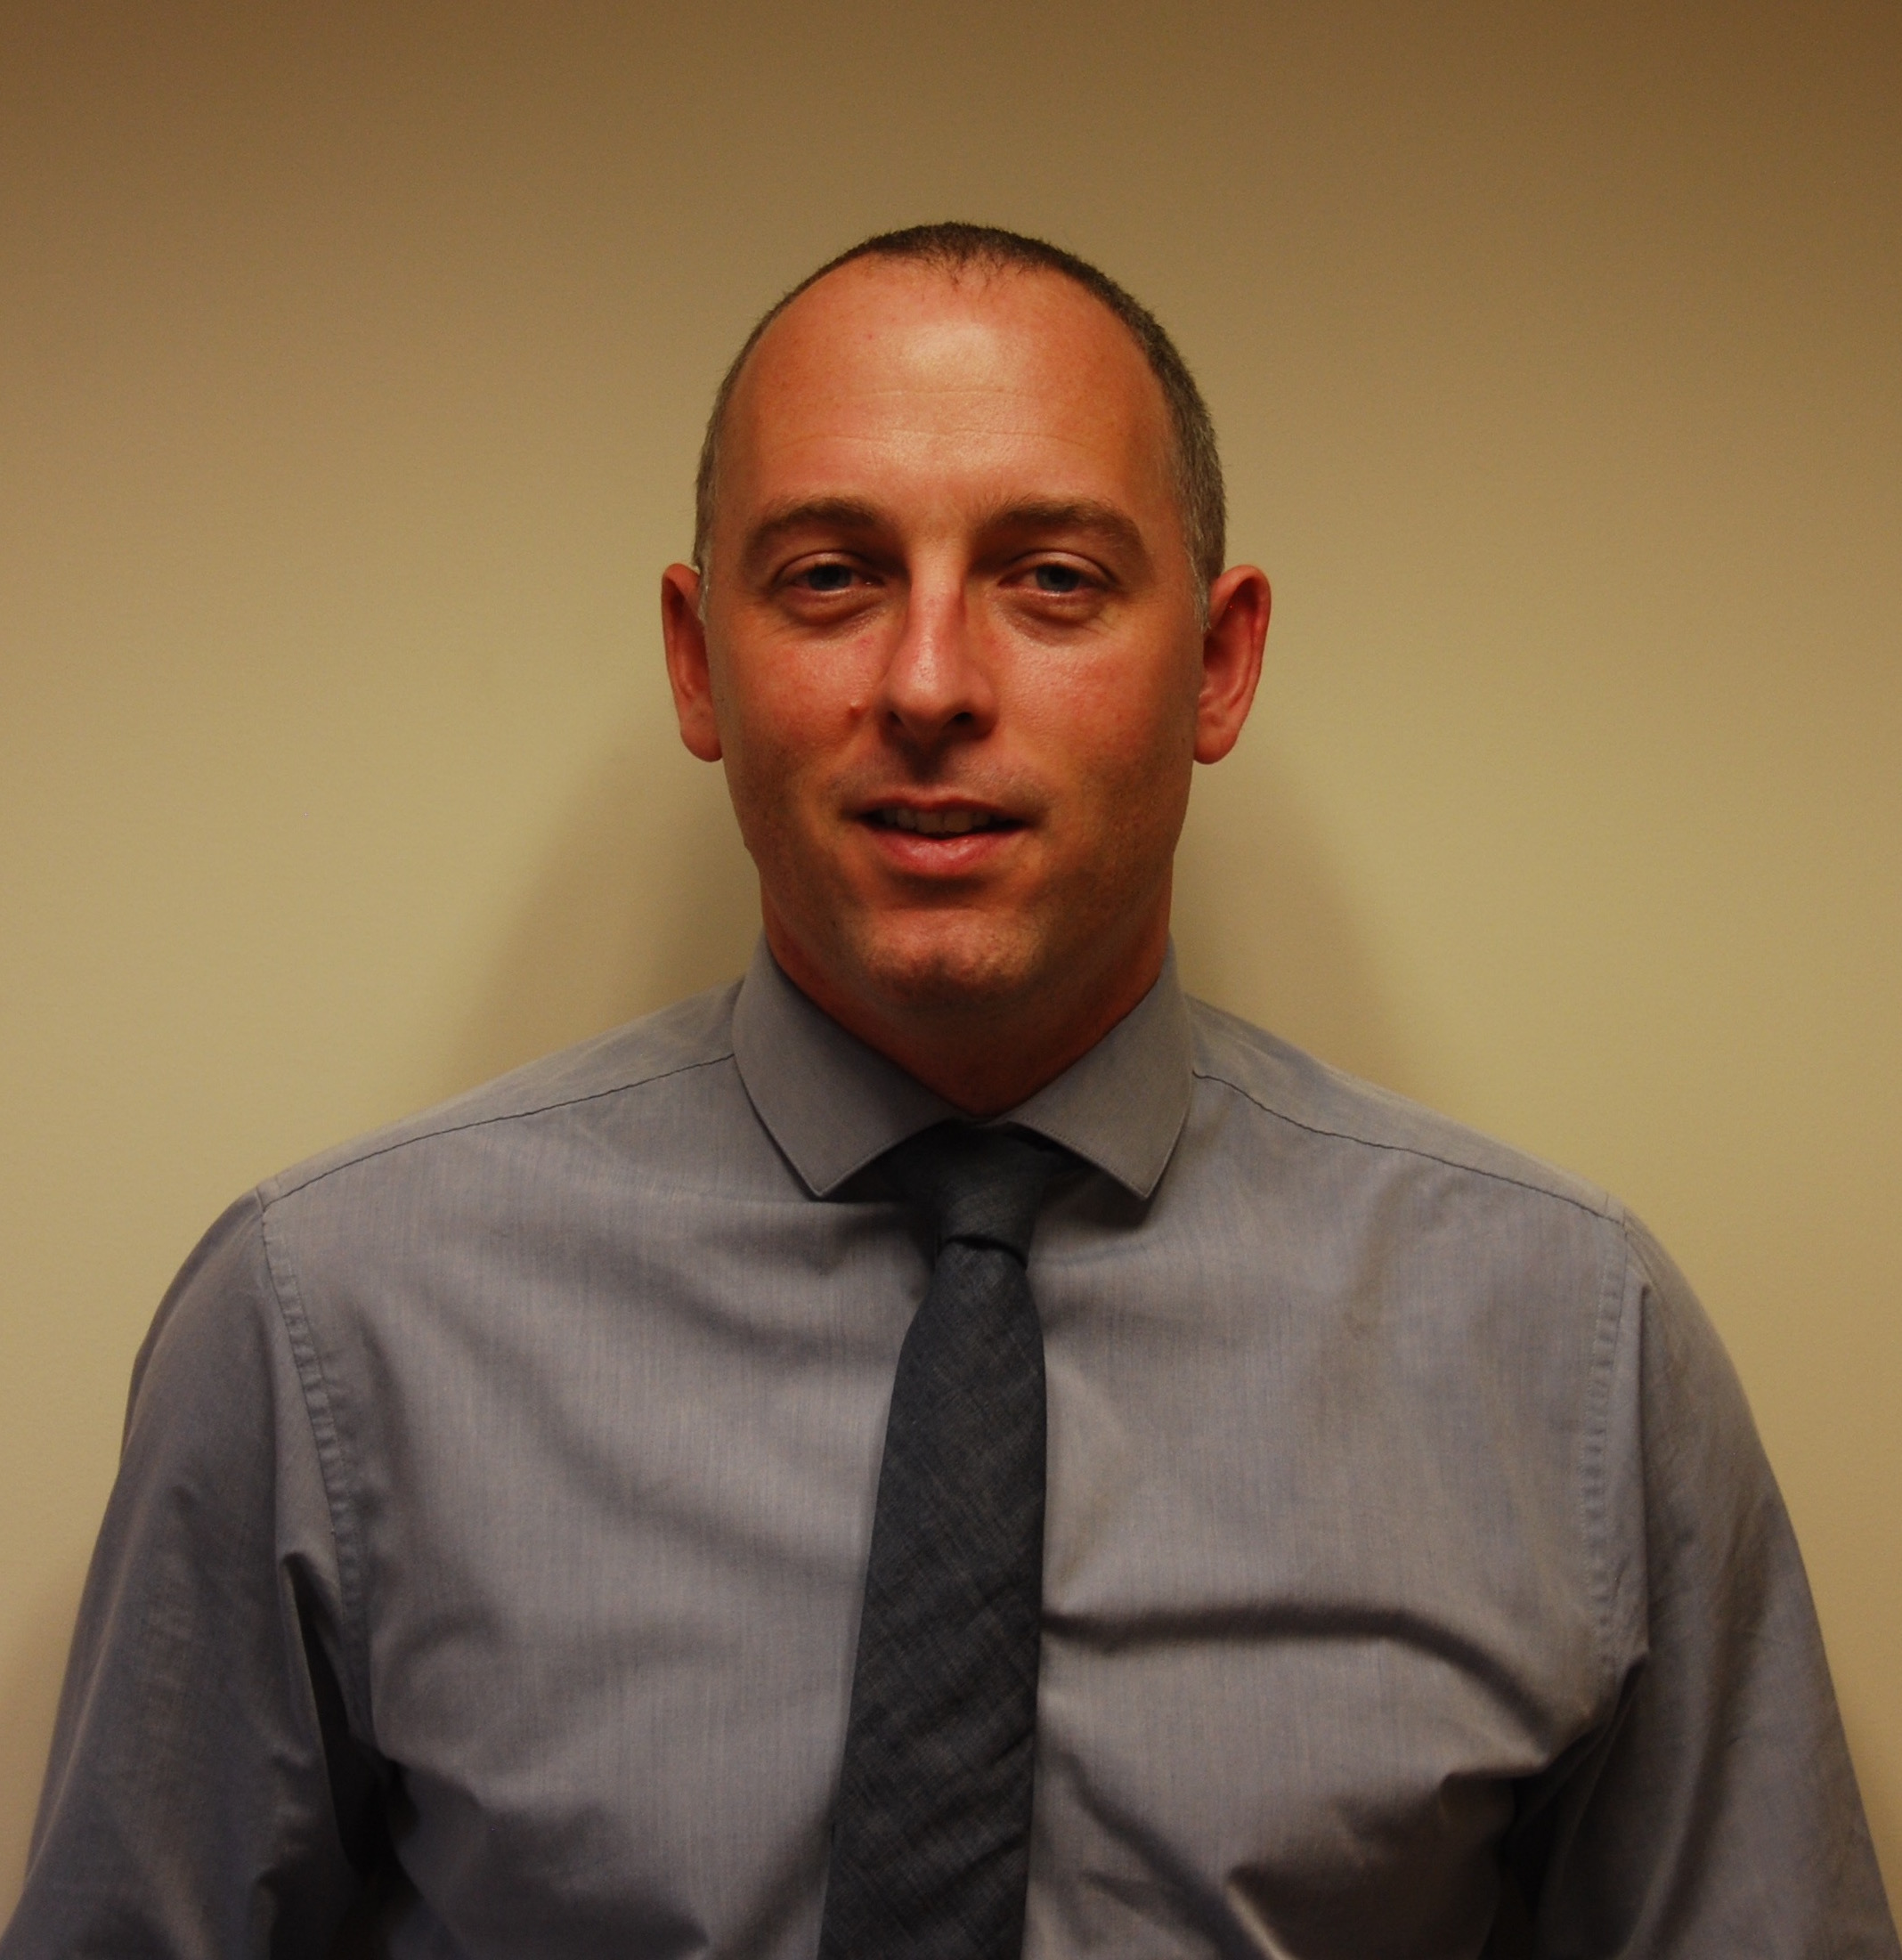 Tom Pearce Bsc (Hons) – Commercial Manager